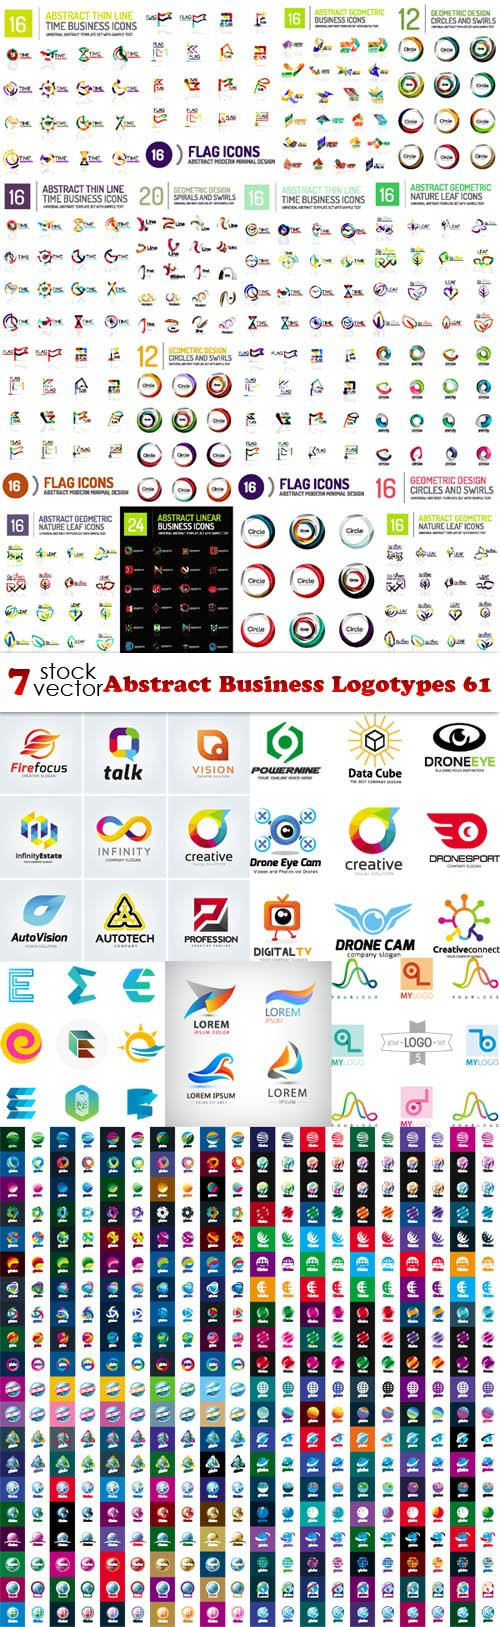 Vectors - Abstract Business Logotypes 61